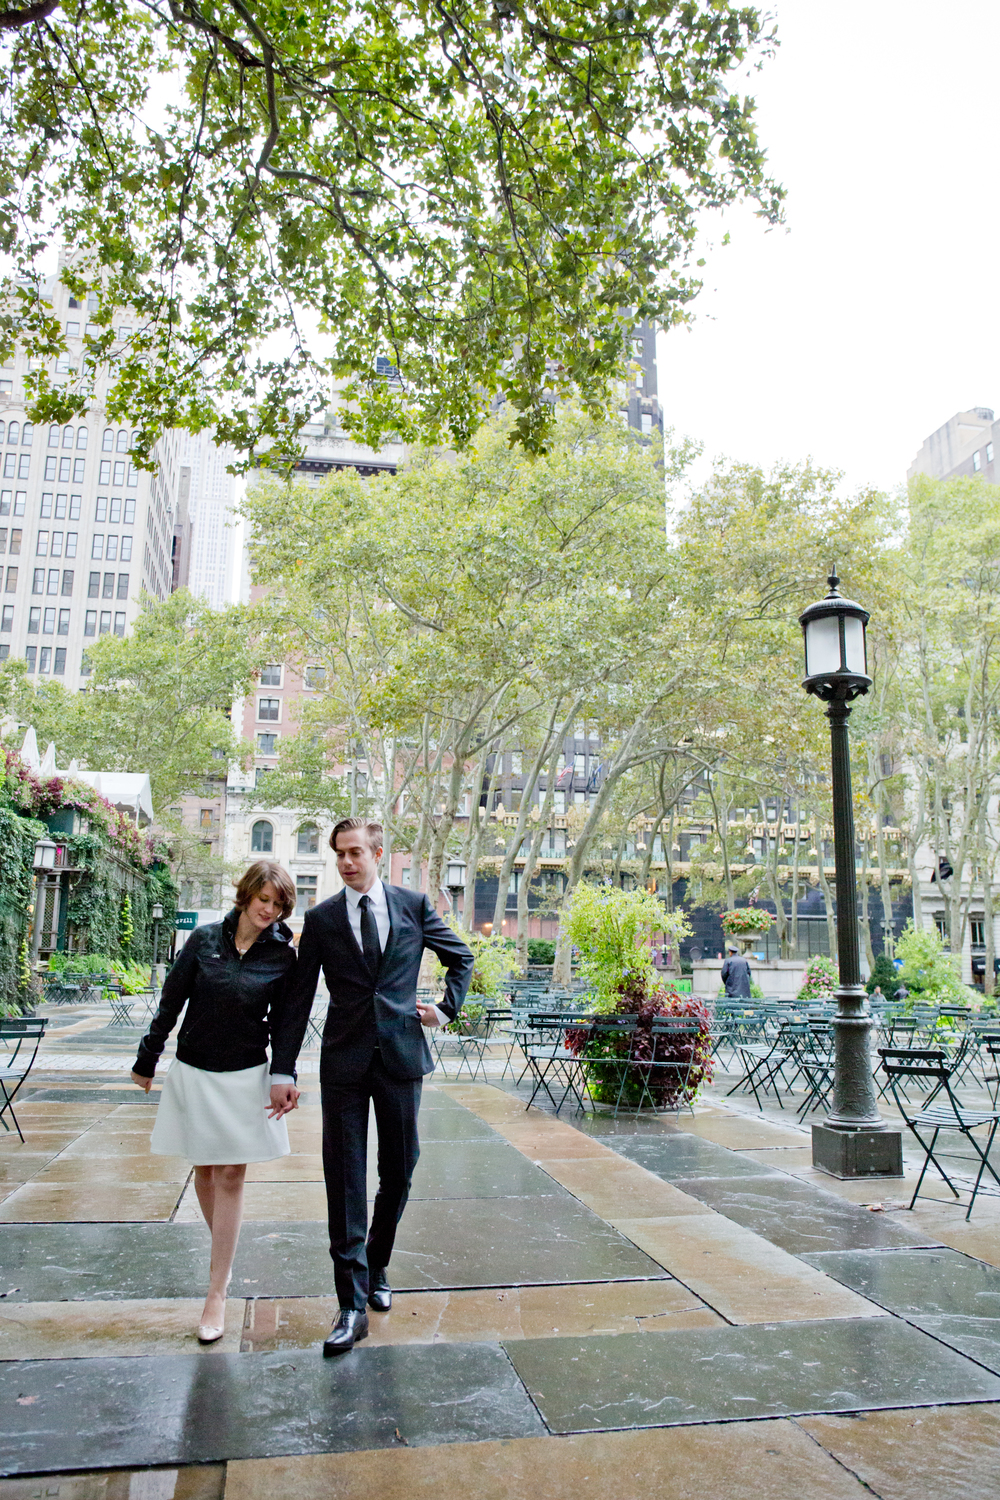 122_CarlyGaebe_SteadfastStudio_WeddingPhotography_NewYorkCity_Manhattan_BryantPark_PublicLibrary_Bride_Groom_Rainy.jpg